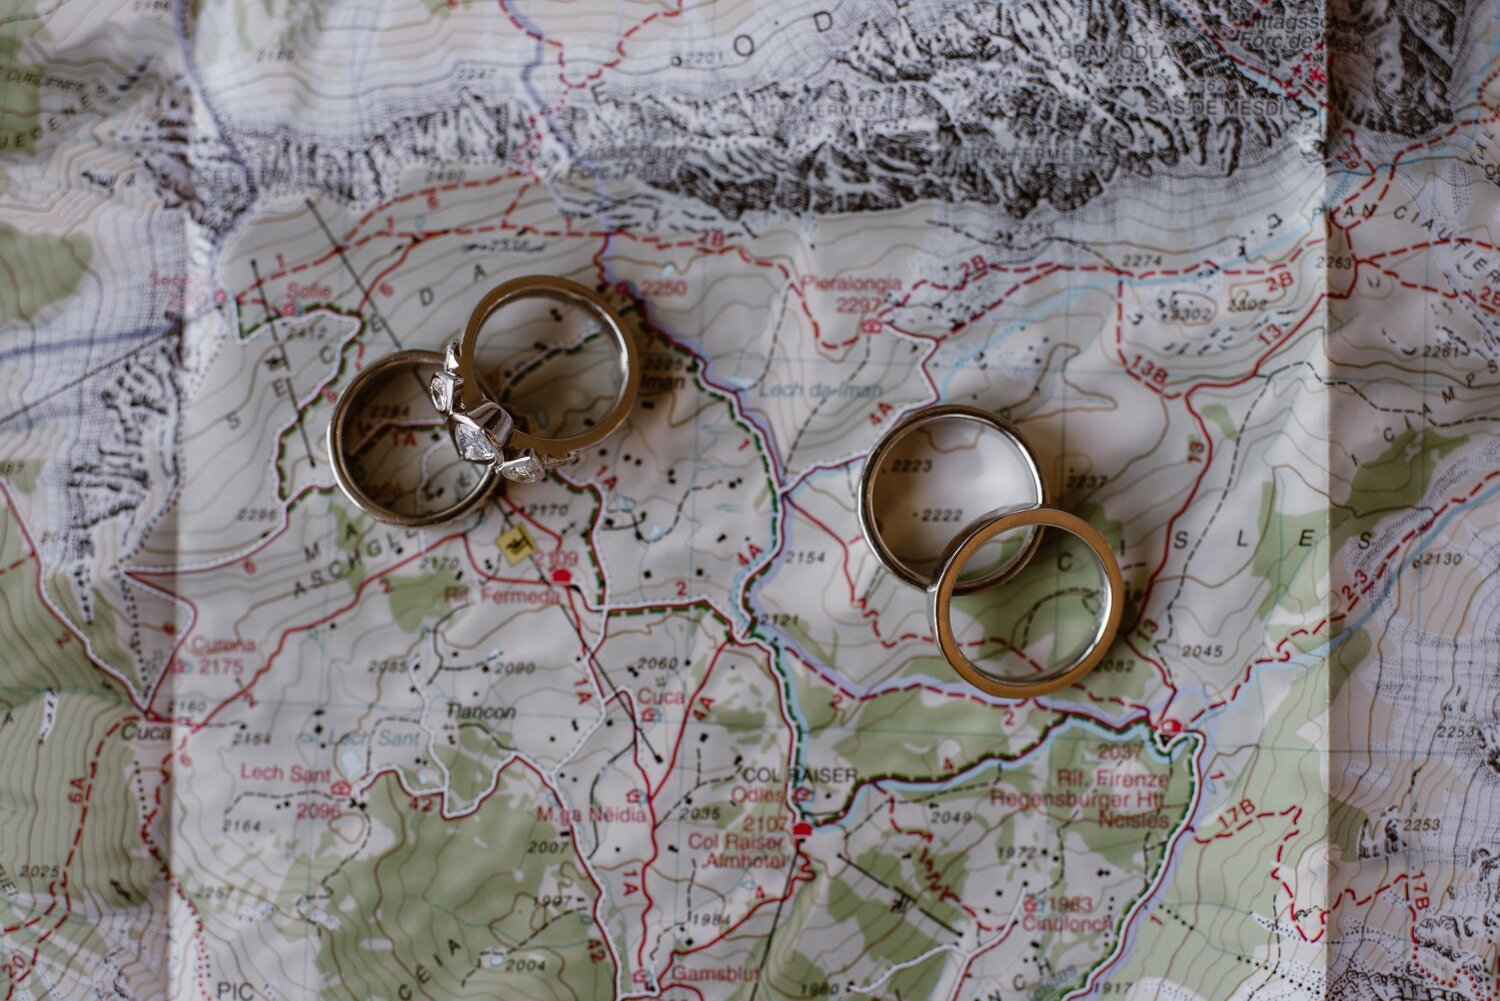 A close-up of wedding bands on top of a map of the Italian Dolomites.